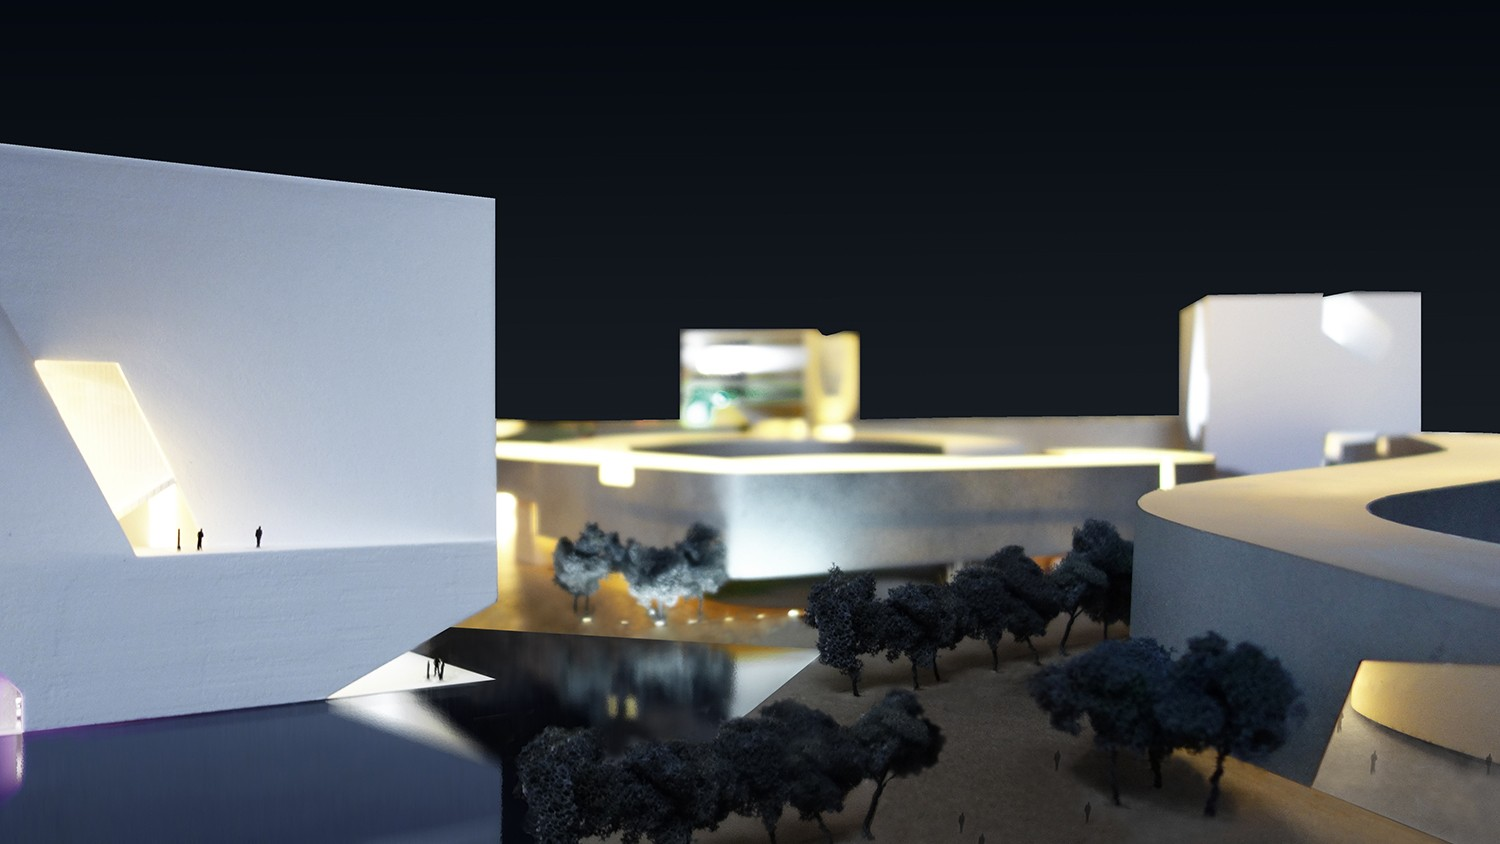 https://s3.us-east-2.amazonaws.com/steven-holl/uploads/projects/project-images/StevenHollArchitects_Qingdao_2_s_touched_WH.jpg